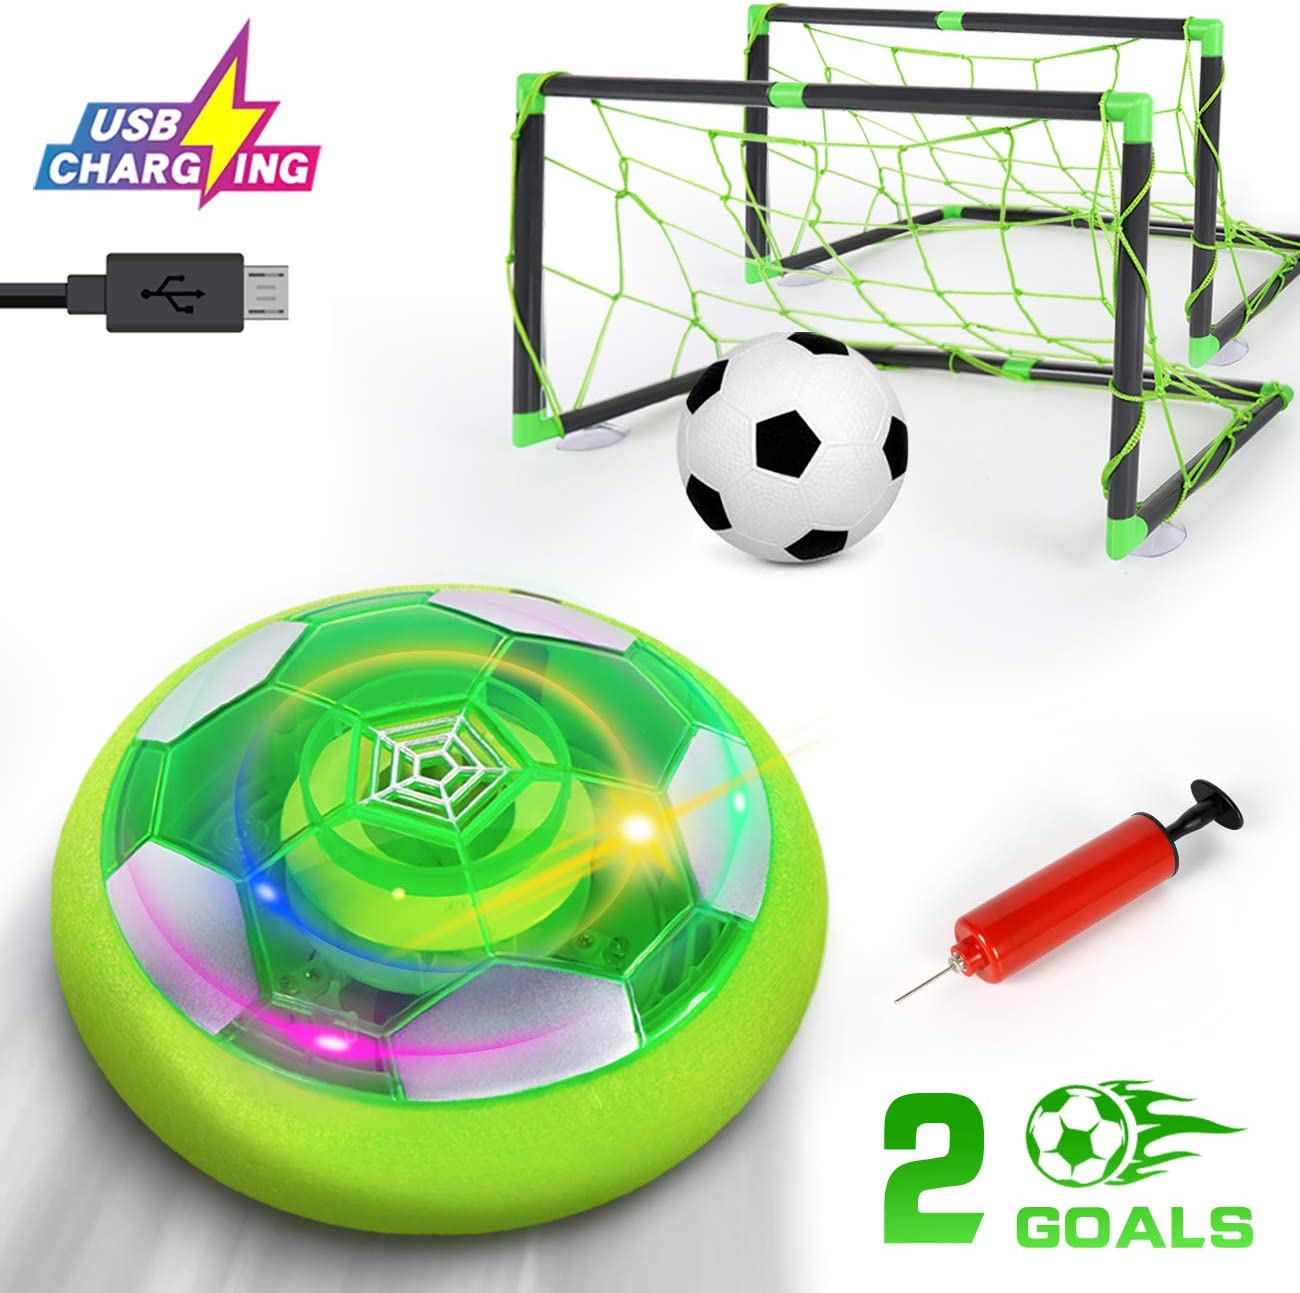 KingsDragon Kids Toys Hover Soccer Ball,Rechargeable Air Soccer Set With 2 Goals, Indoor Outdoor Soccer Game Toy With LED Light & Safe Foam Bumpers & Extra Inflatable Ball,Gift For Boys Girls Toddlers